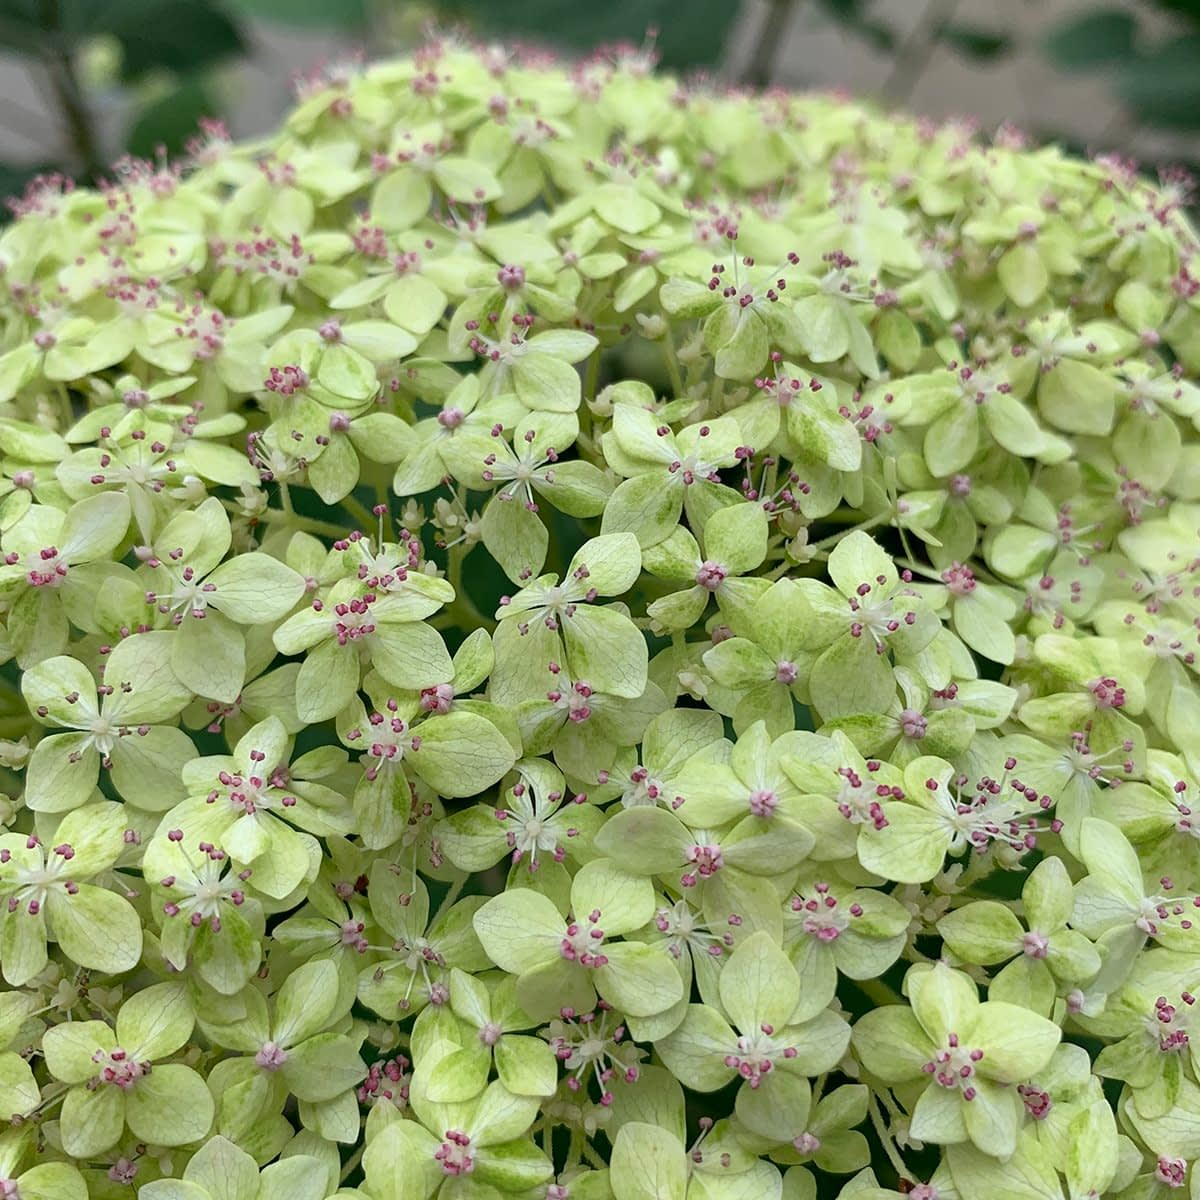 extreme close up of single pale green hydrangea bloom with pink pollen